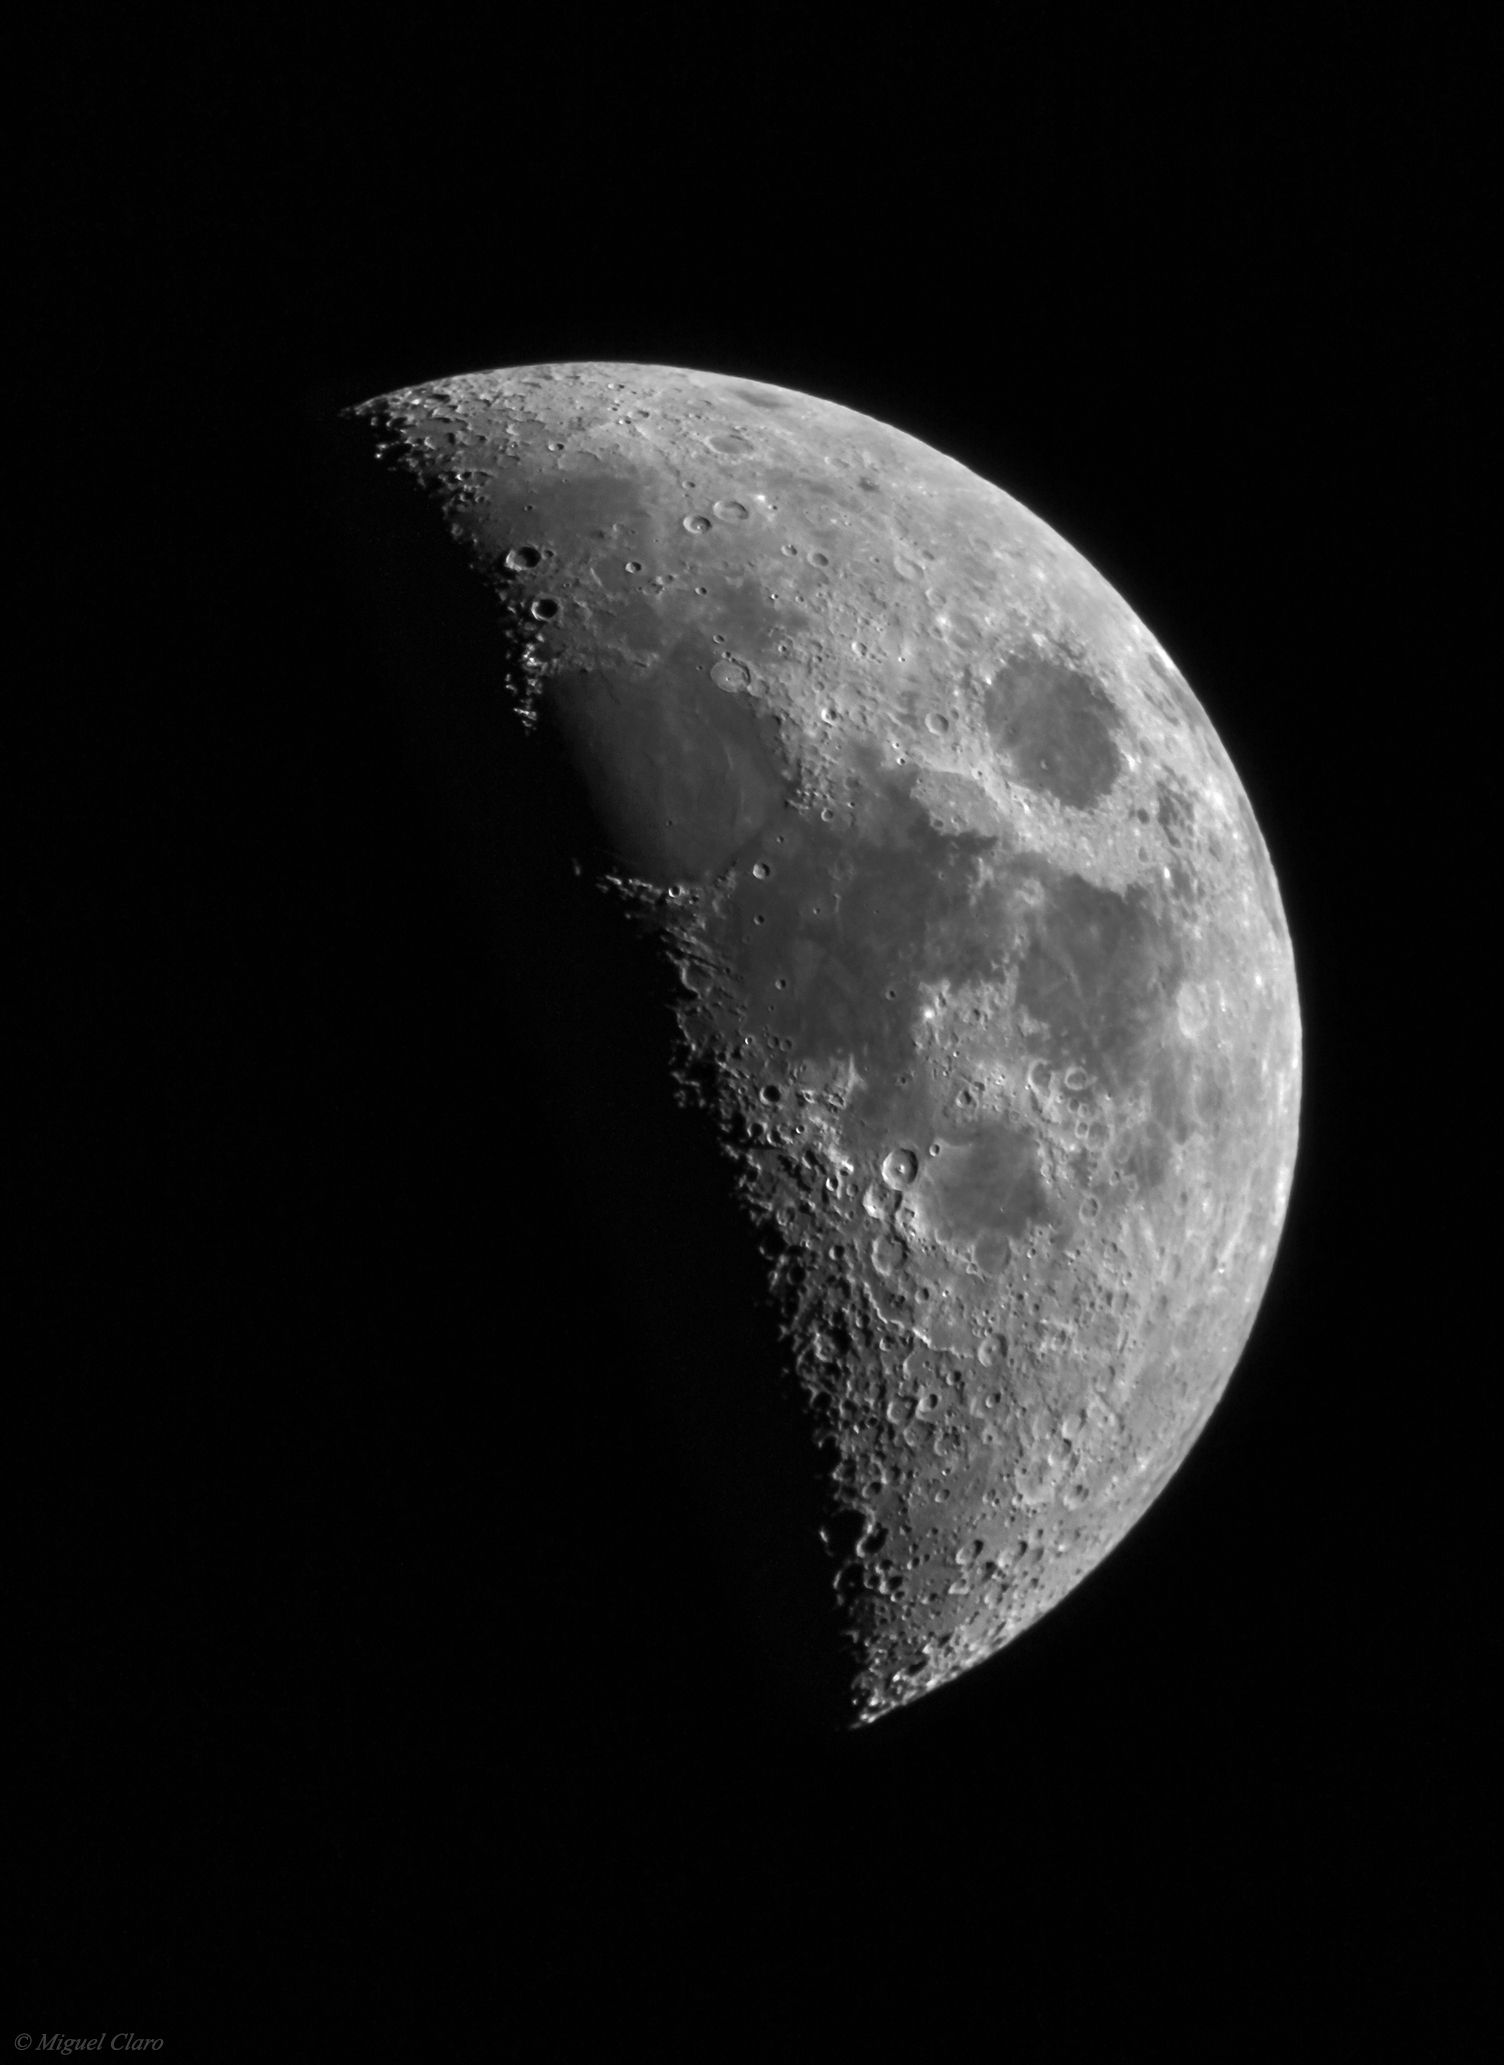 Moon To Moon Moroccan Home: The First Quarter Moon @ Astrophotography By Miguel Claro